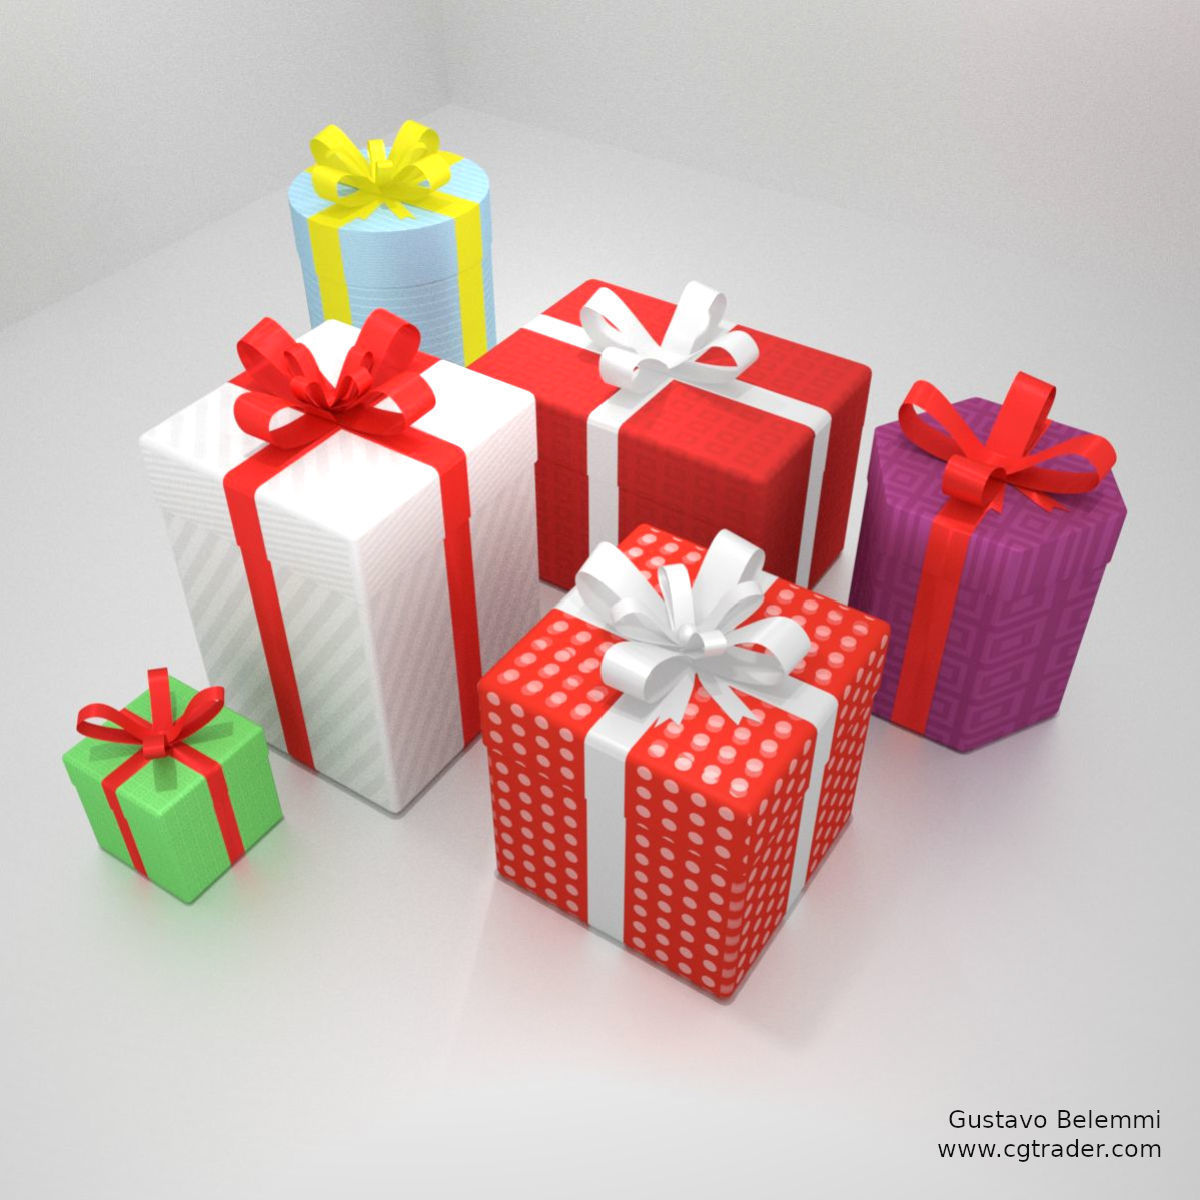 6 Gift Boxes with Wrap Textures